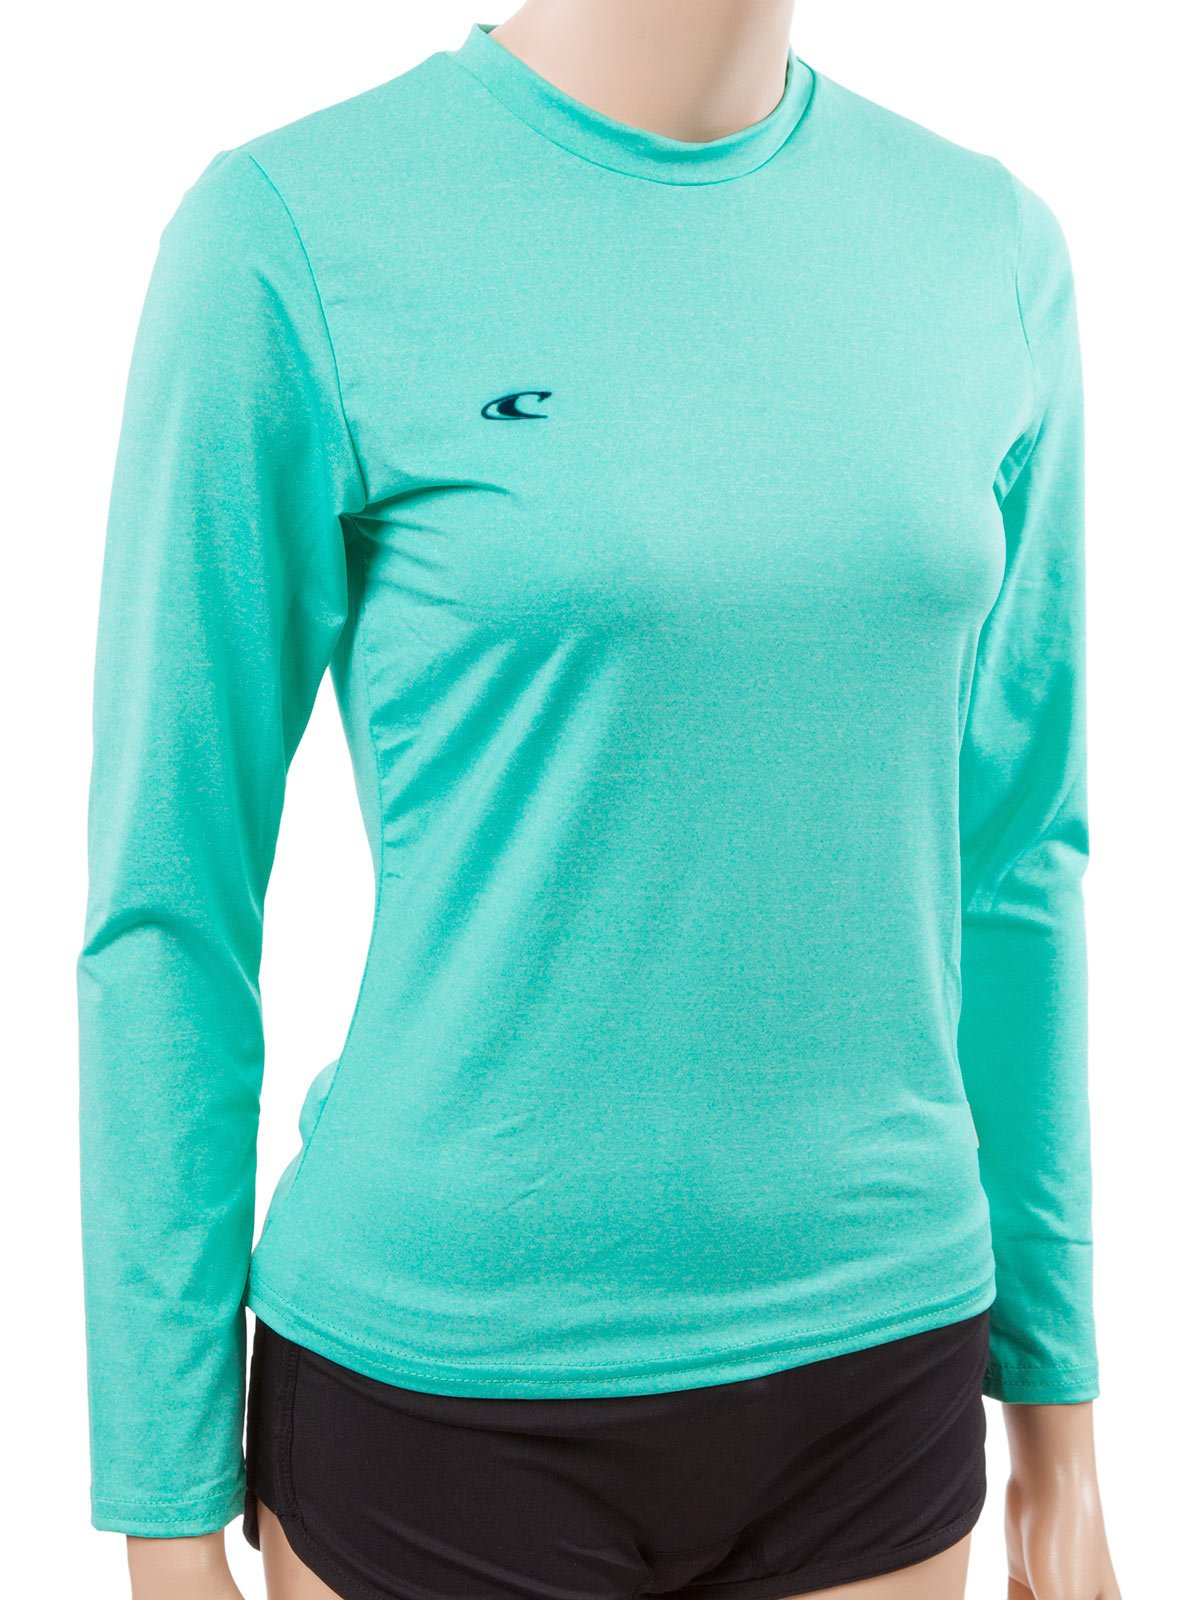 O'Neill Women's 24/7 Hybrid Long Sleeve Sun Tee MT Seaglass (4676IL) by O'Neill Wetsuits